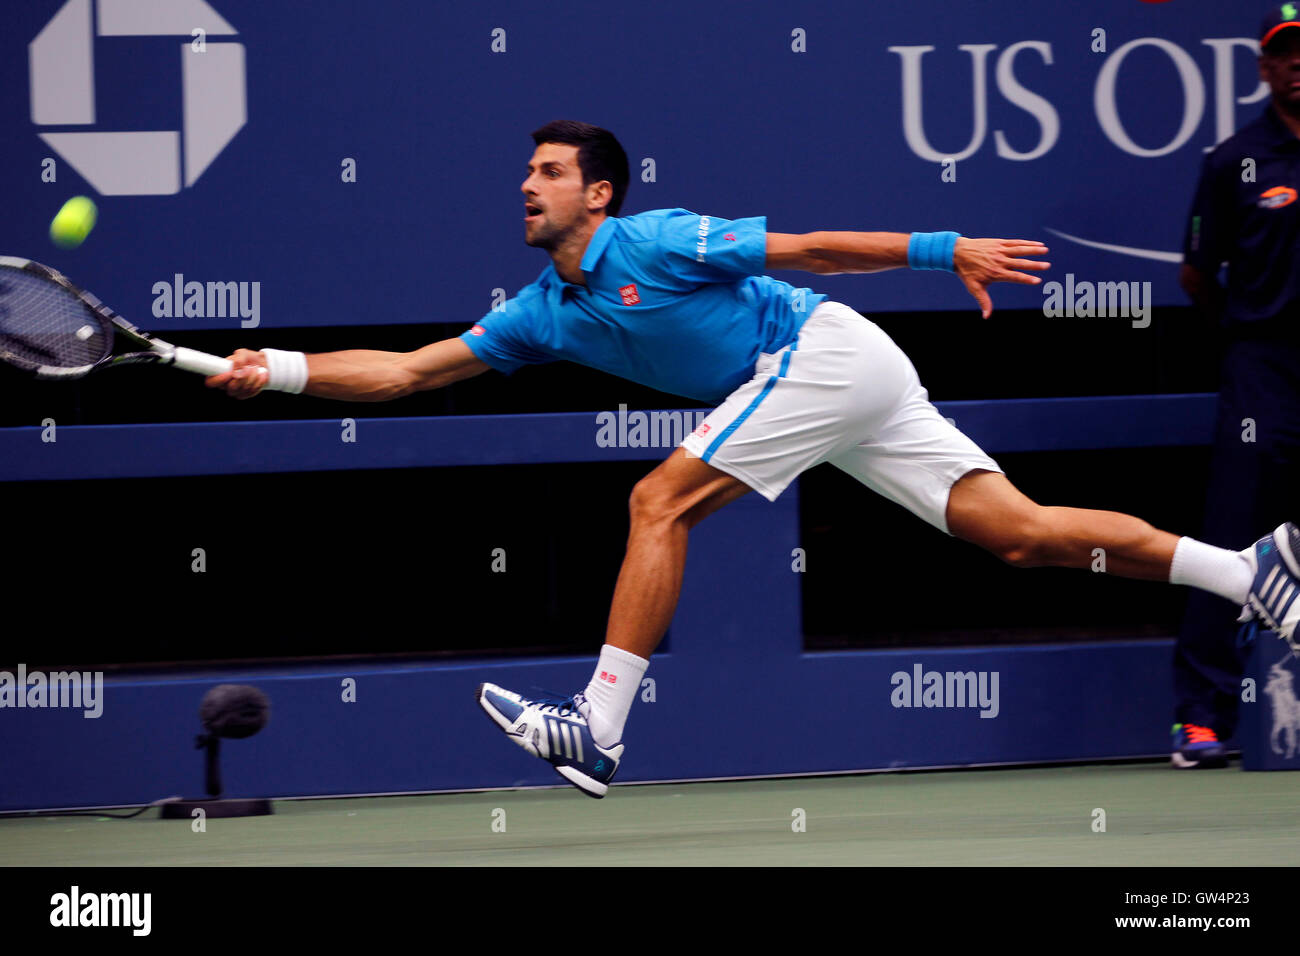 New York, United States. 11th Sep, 2016. Novak Djokovic scrambles for a forehand during the United States Open Tennis - Stock Image